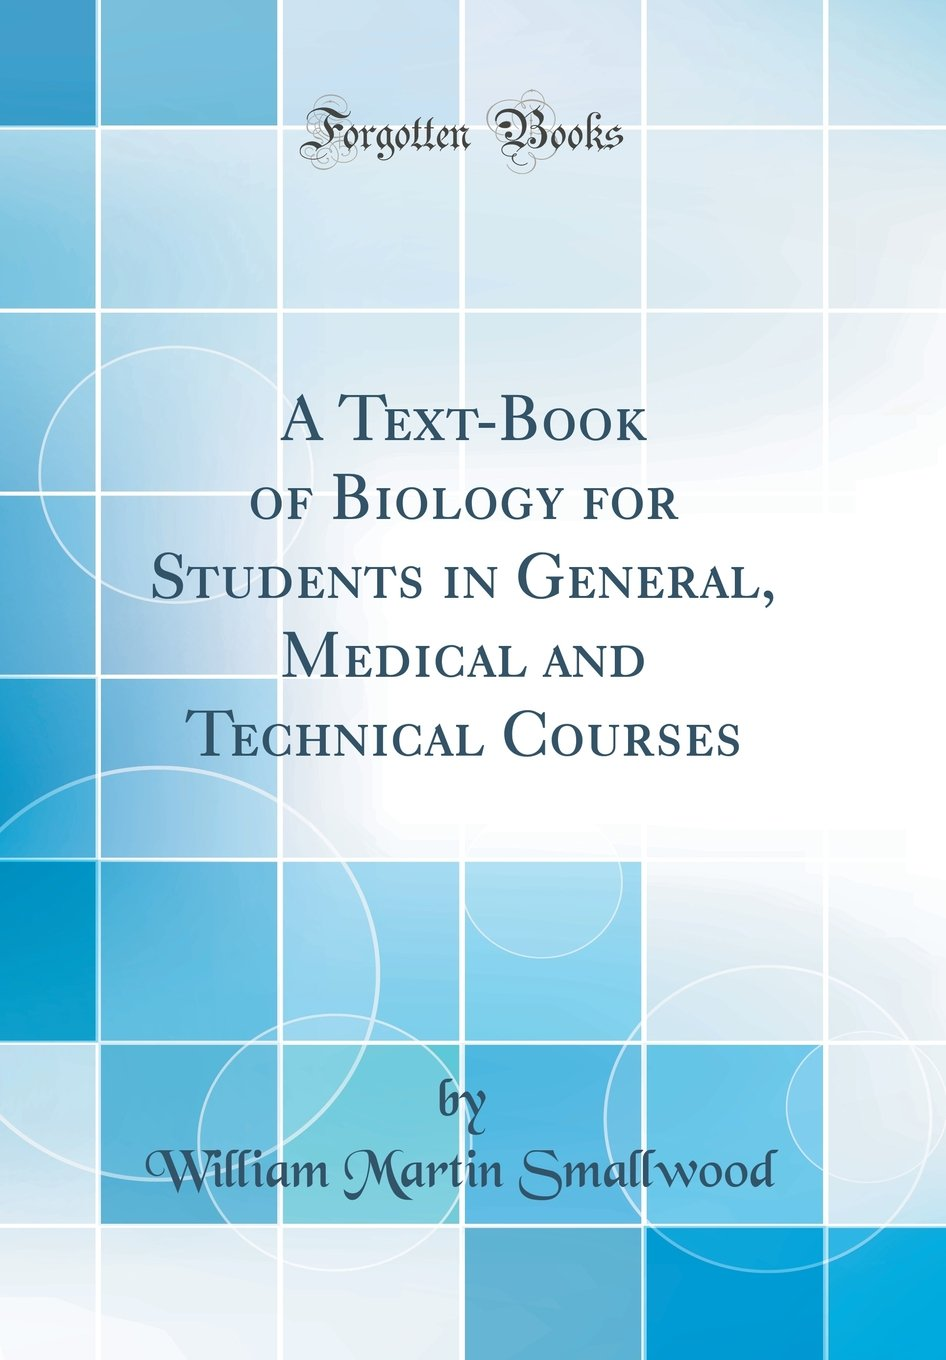 A Text-Book of Biology for Students in General, Medical and Technical Courses (Classic Reprint) ebook